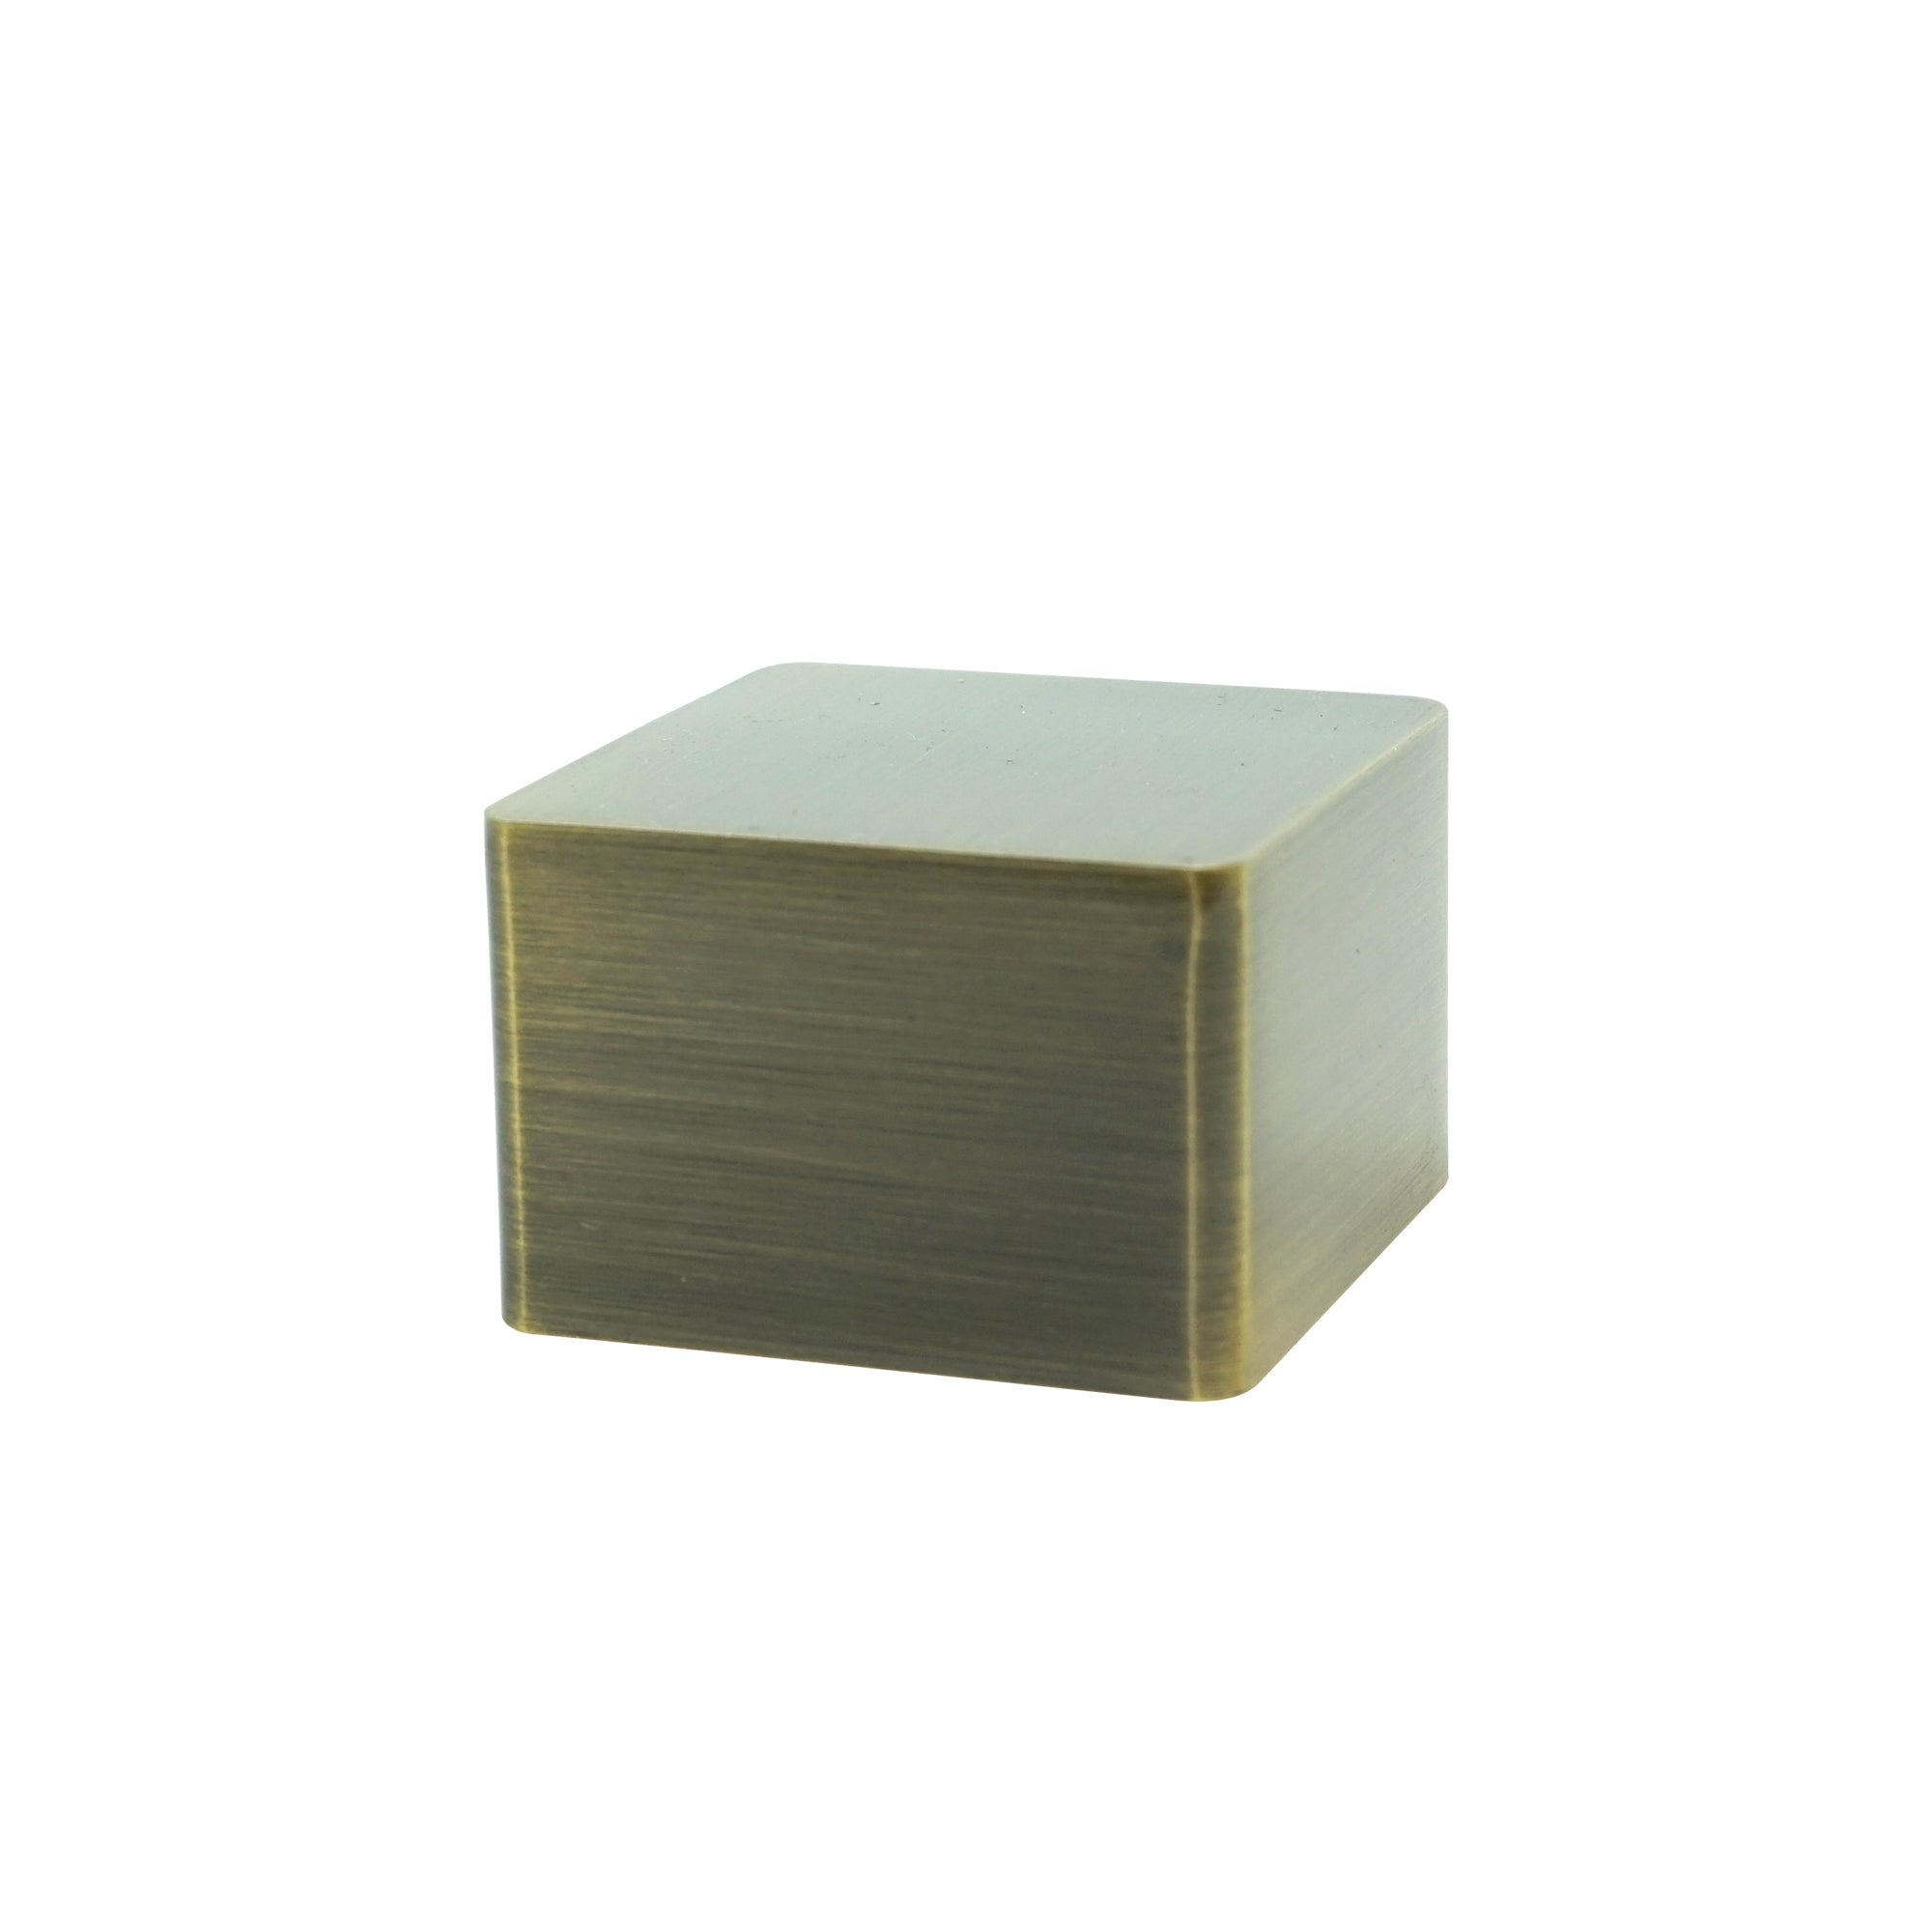 Square Metal Endcap - Antique Brass Finish